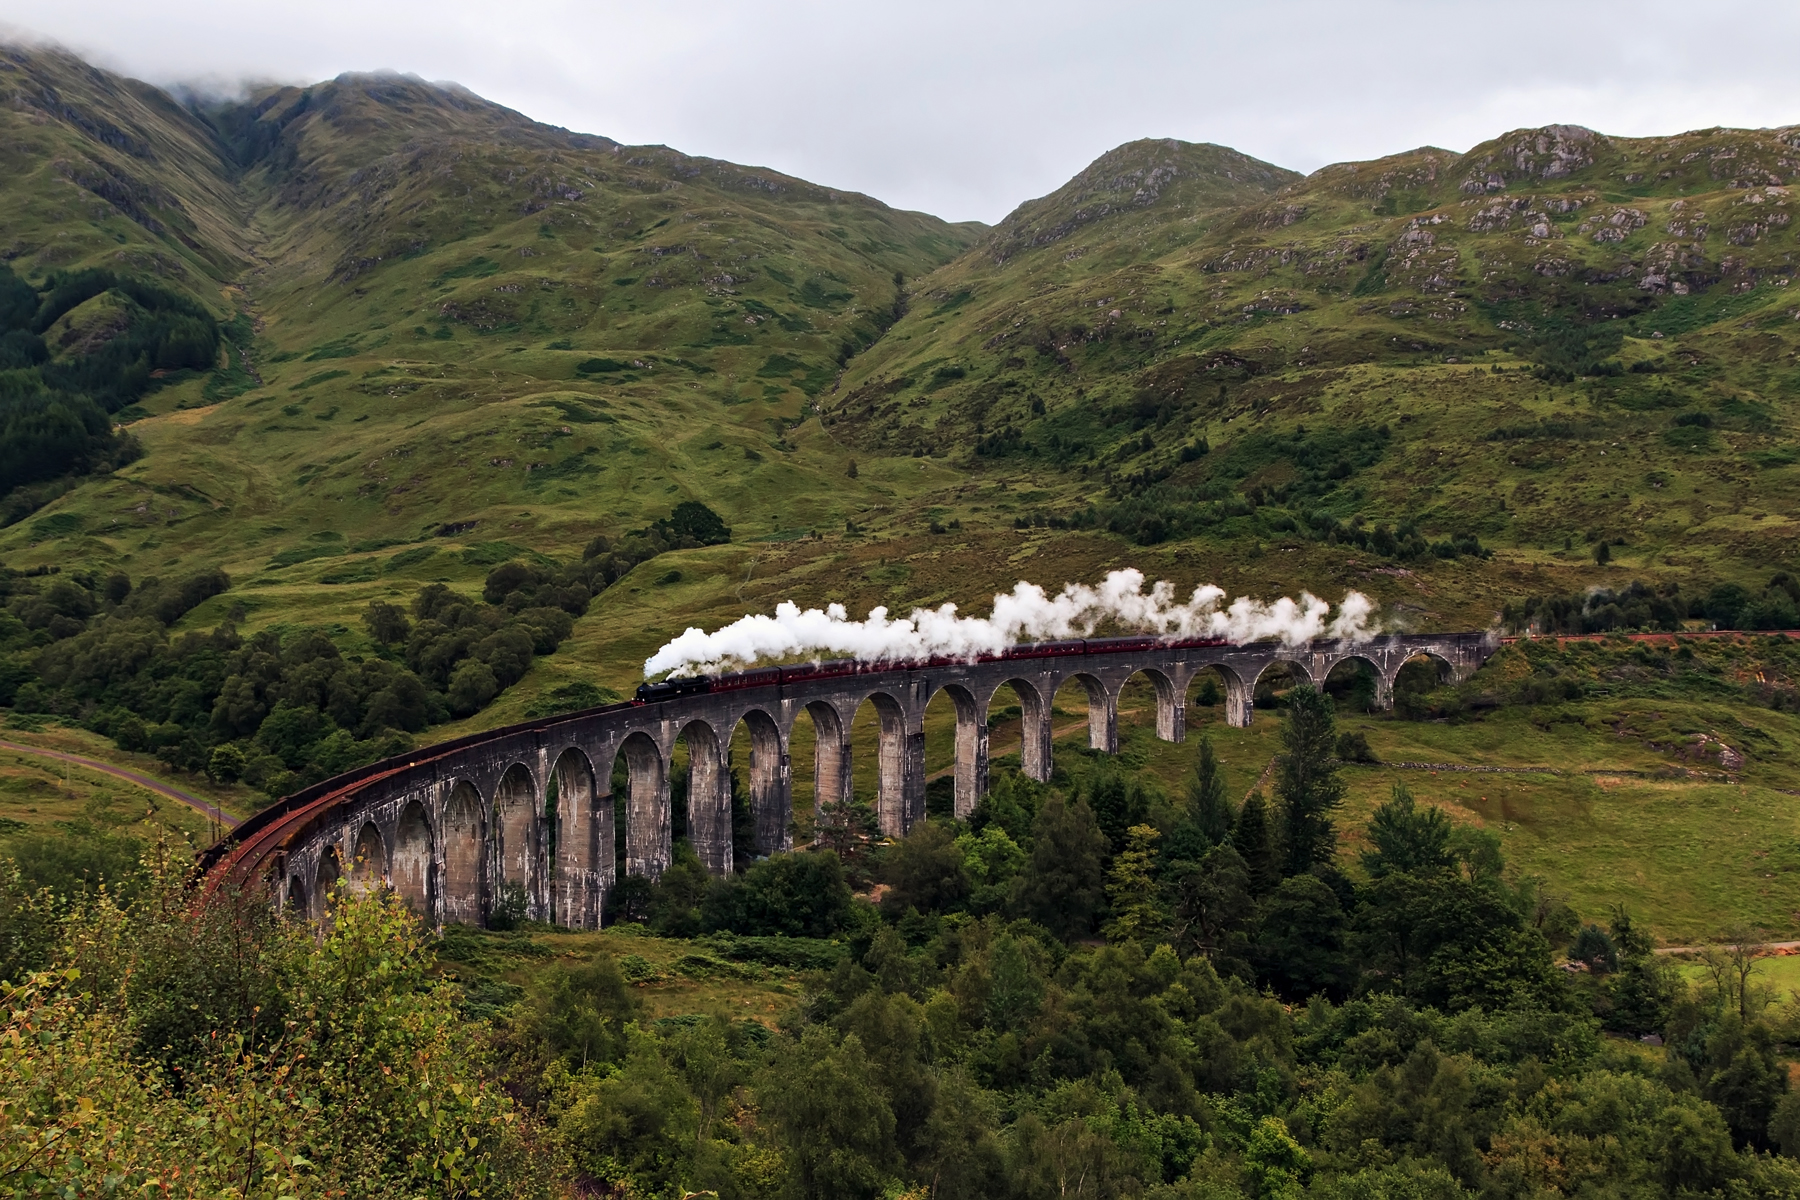 Glenfinnan United Kingdom  City new picture : Glenfinnan Viaduct. Bridge in Scotland, United Kingdom